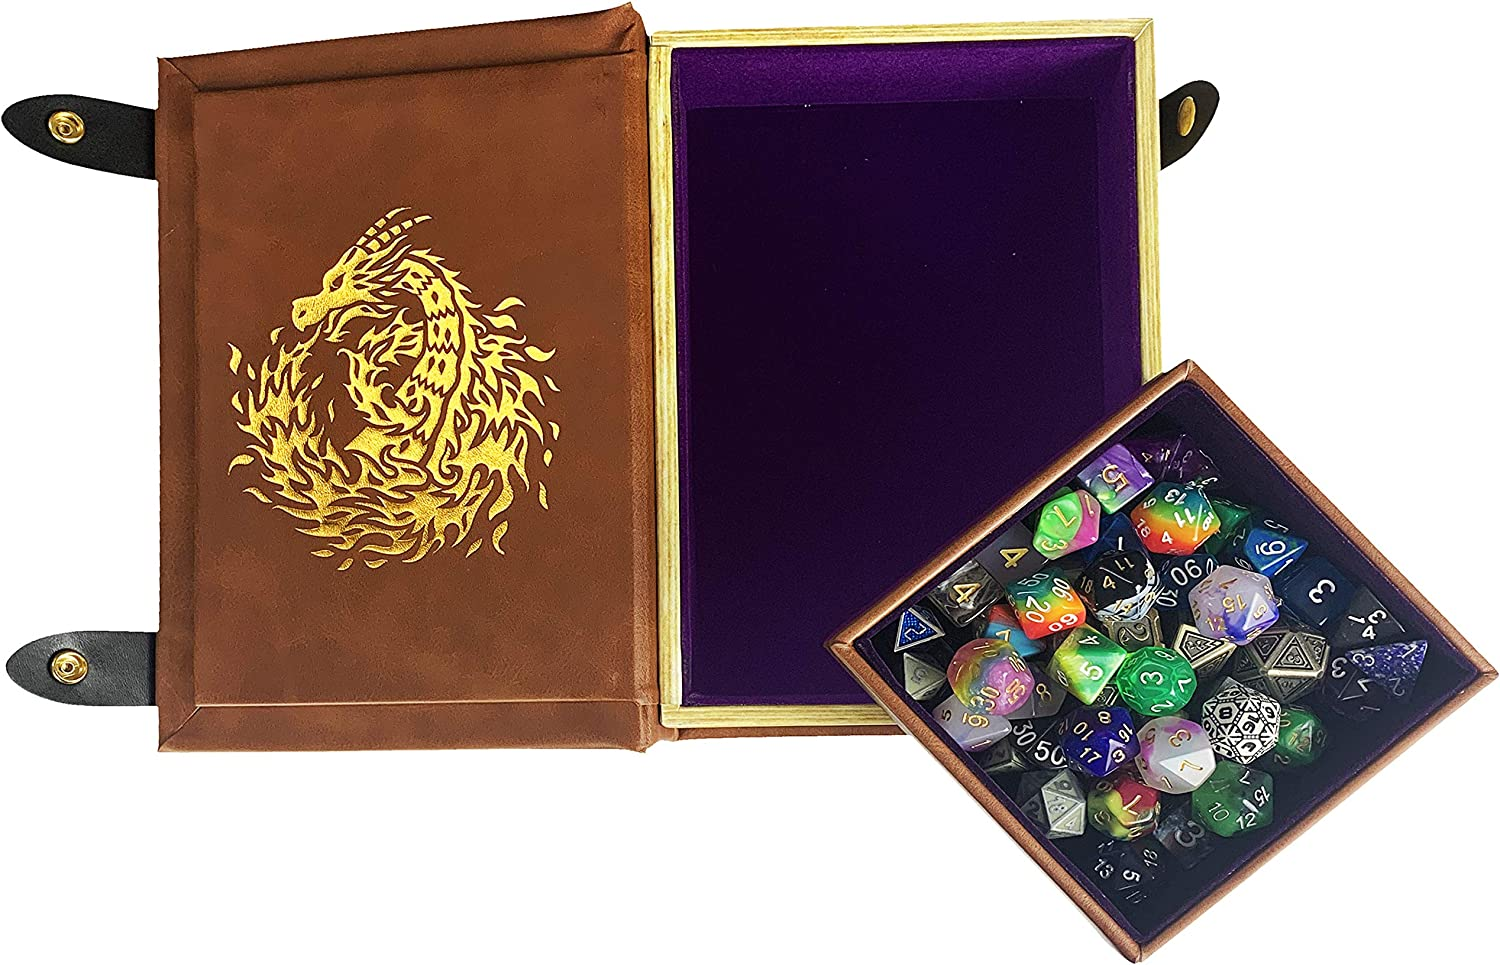 Fantasydice Book-Shaped Gold /Purple Fire Dragon Rolling Magic Book Tray for All Tabletop RPGs Like D&D , Call of Cthulhu, Shadowrun.